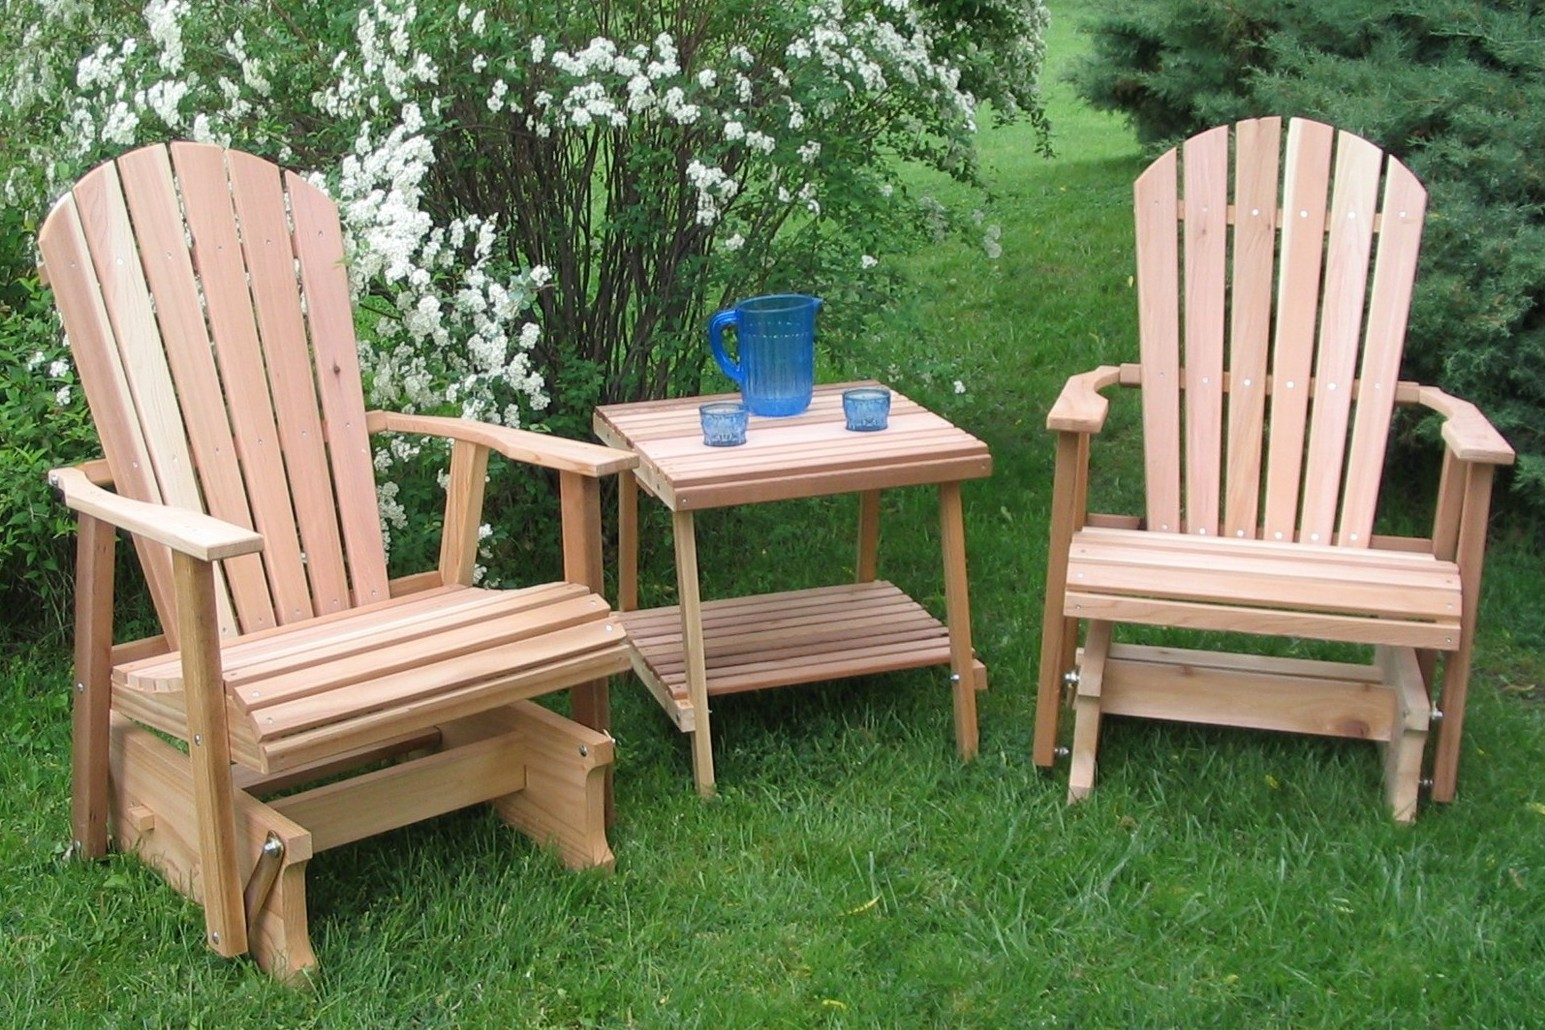 Wooden Lawn Chairs ~ Lawn glider furniture home designs project